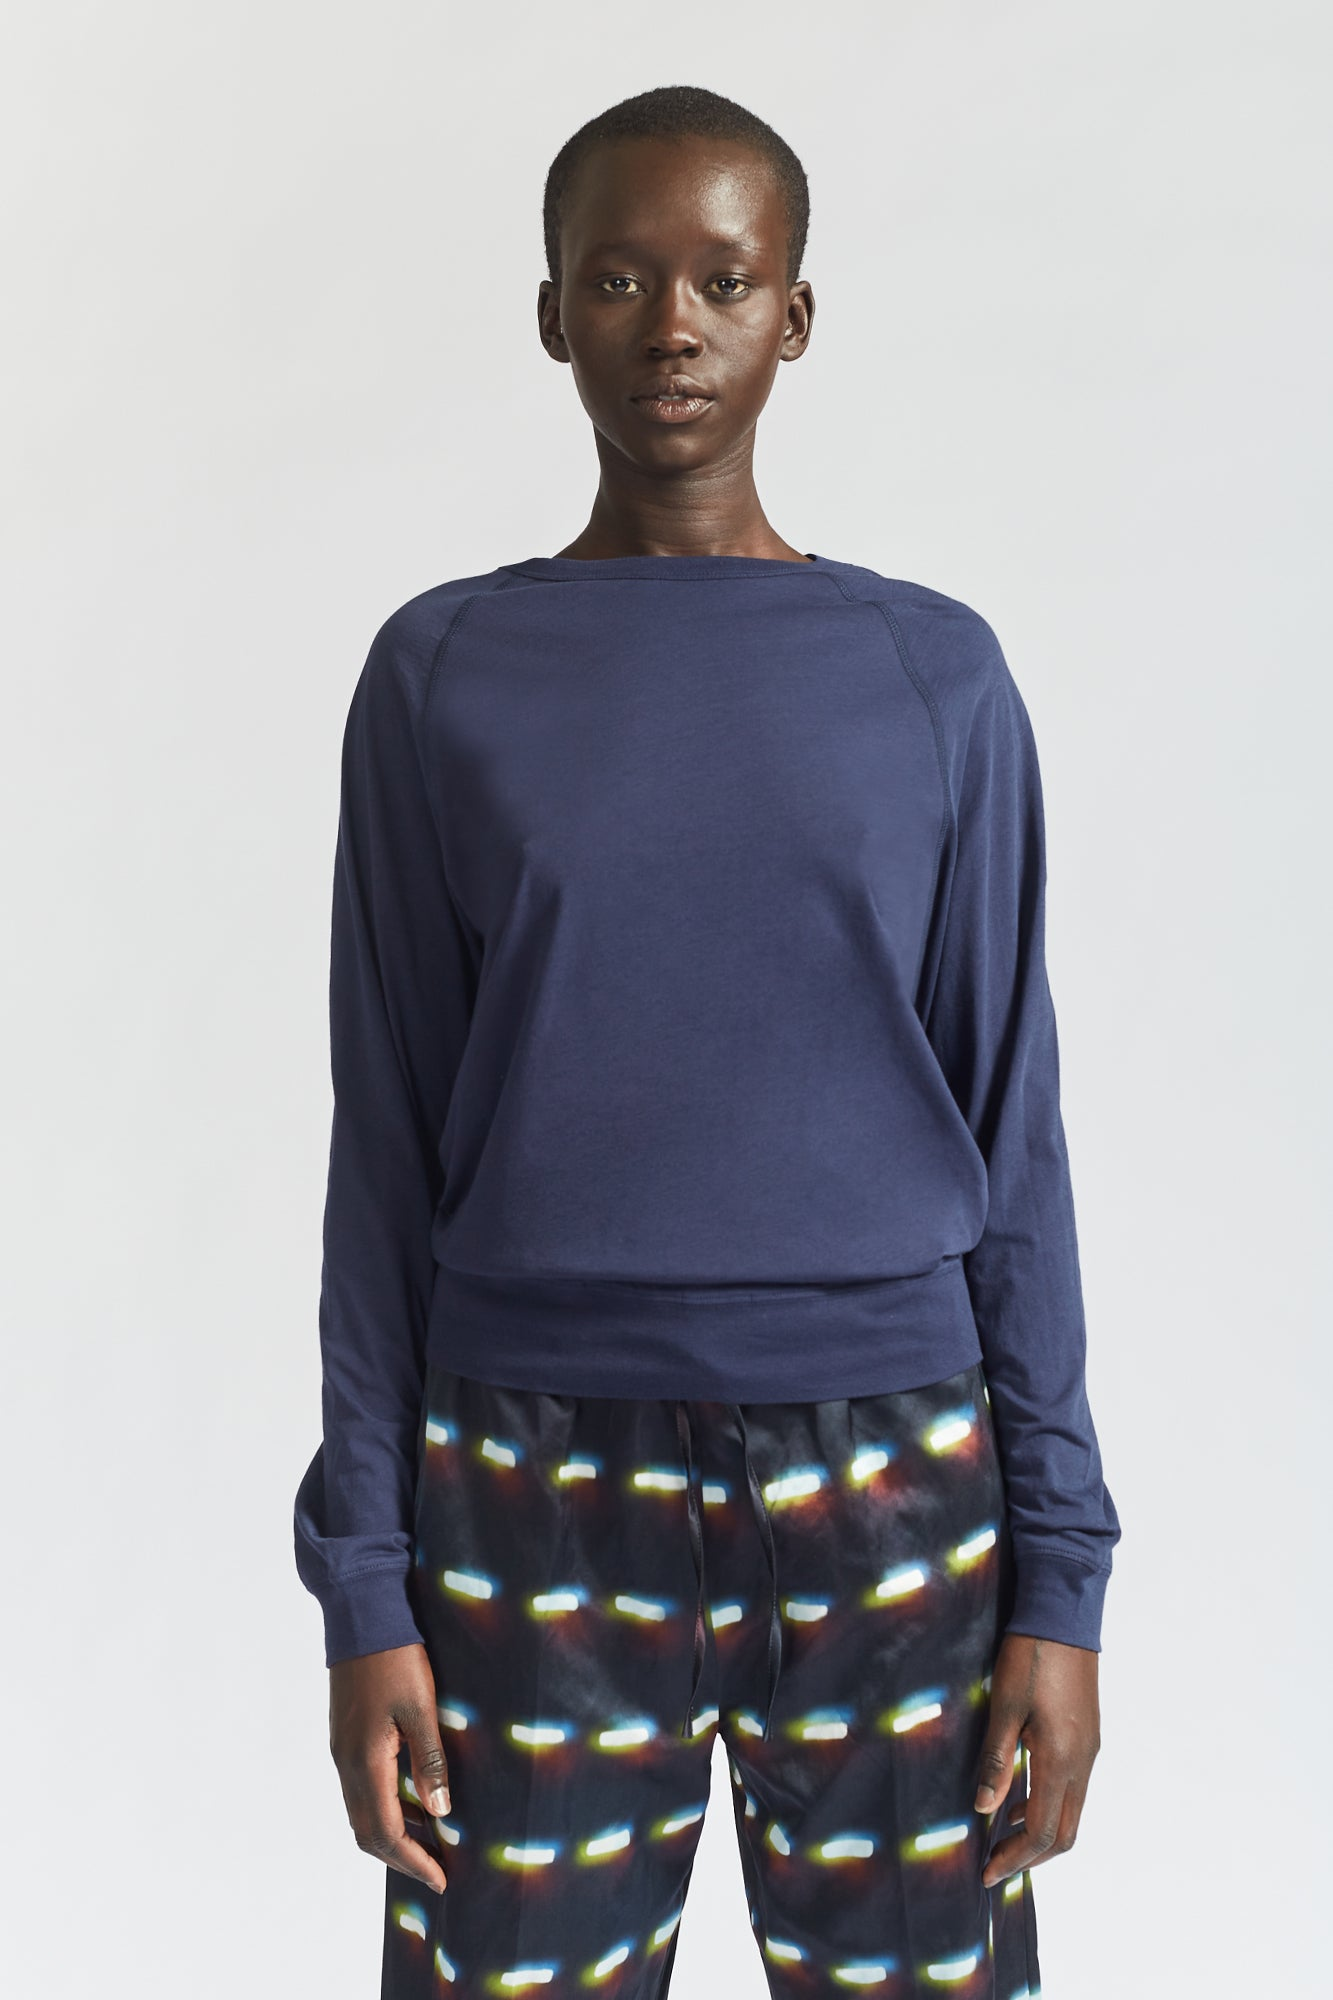 Dries Van Noten Heskin sweater